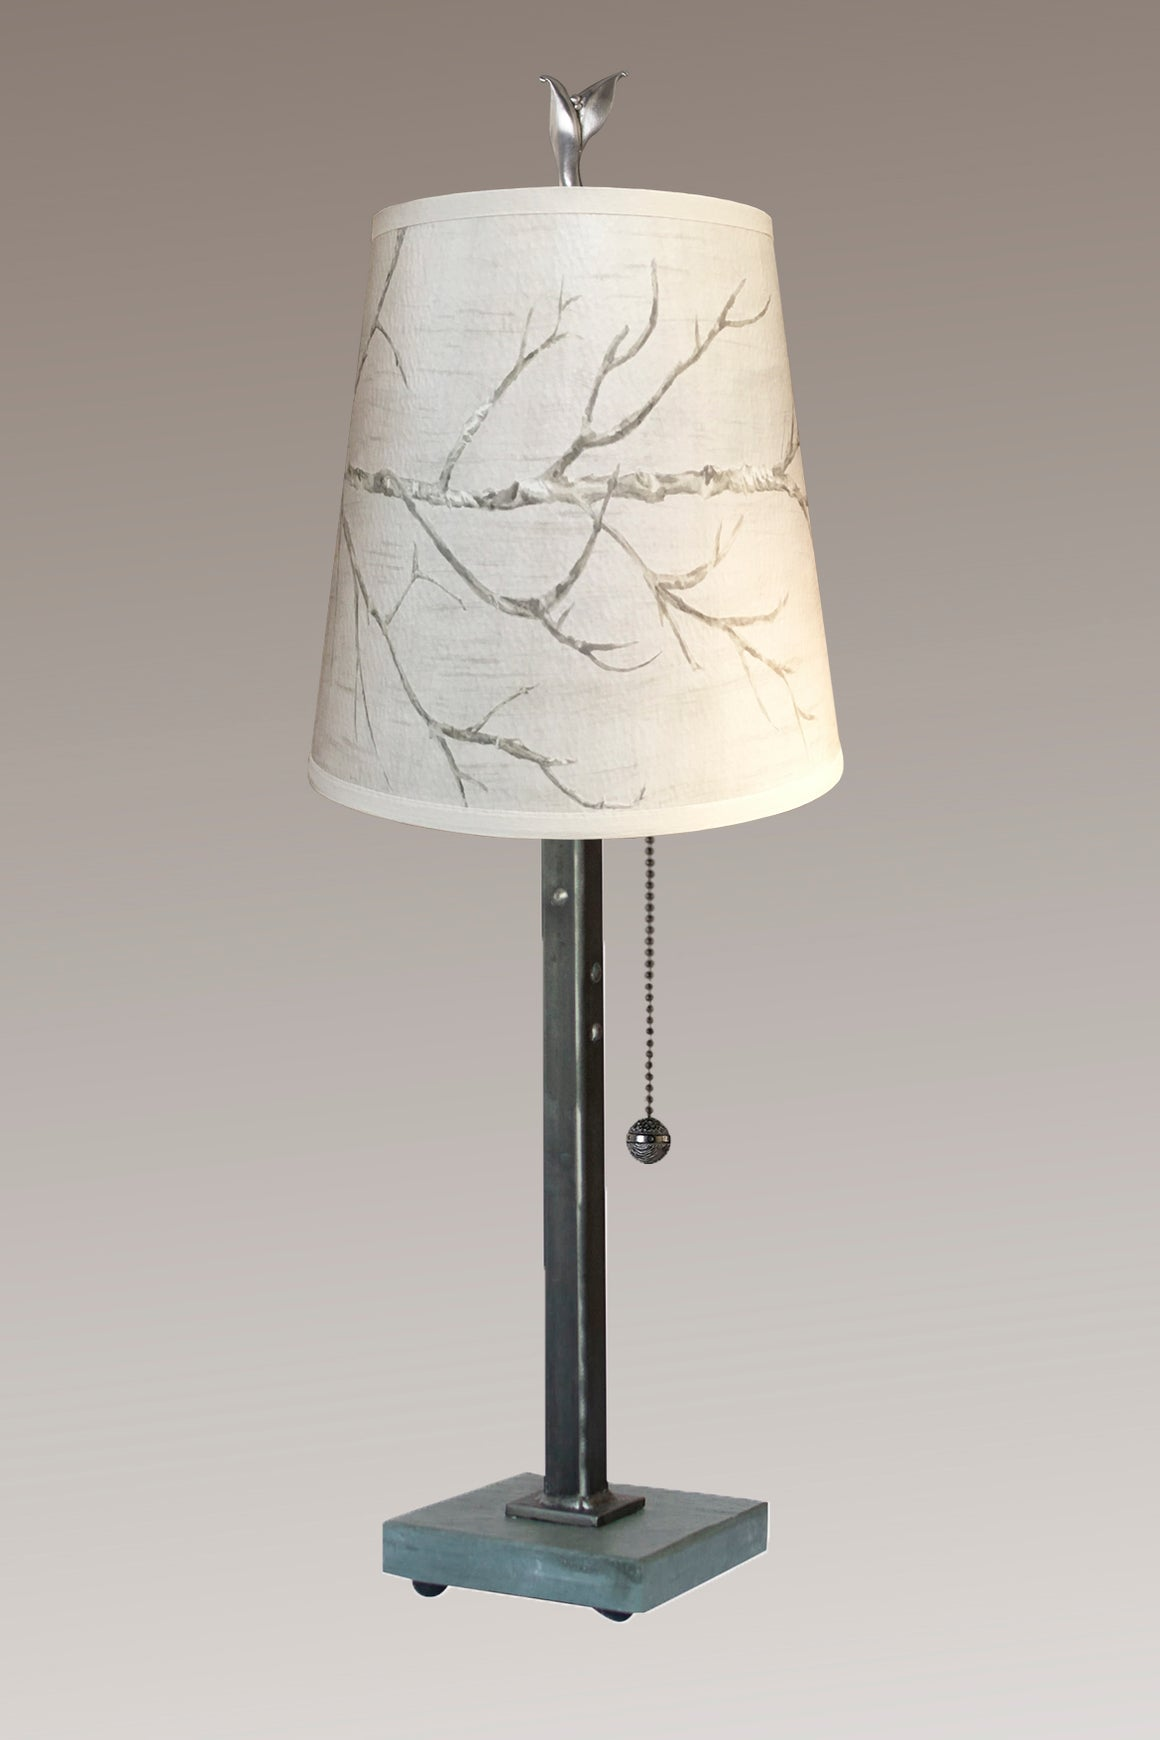 Steel Table Lamp on Vermont Slate Base with Small Drum Shade in Sweeping Branch